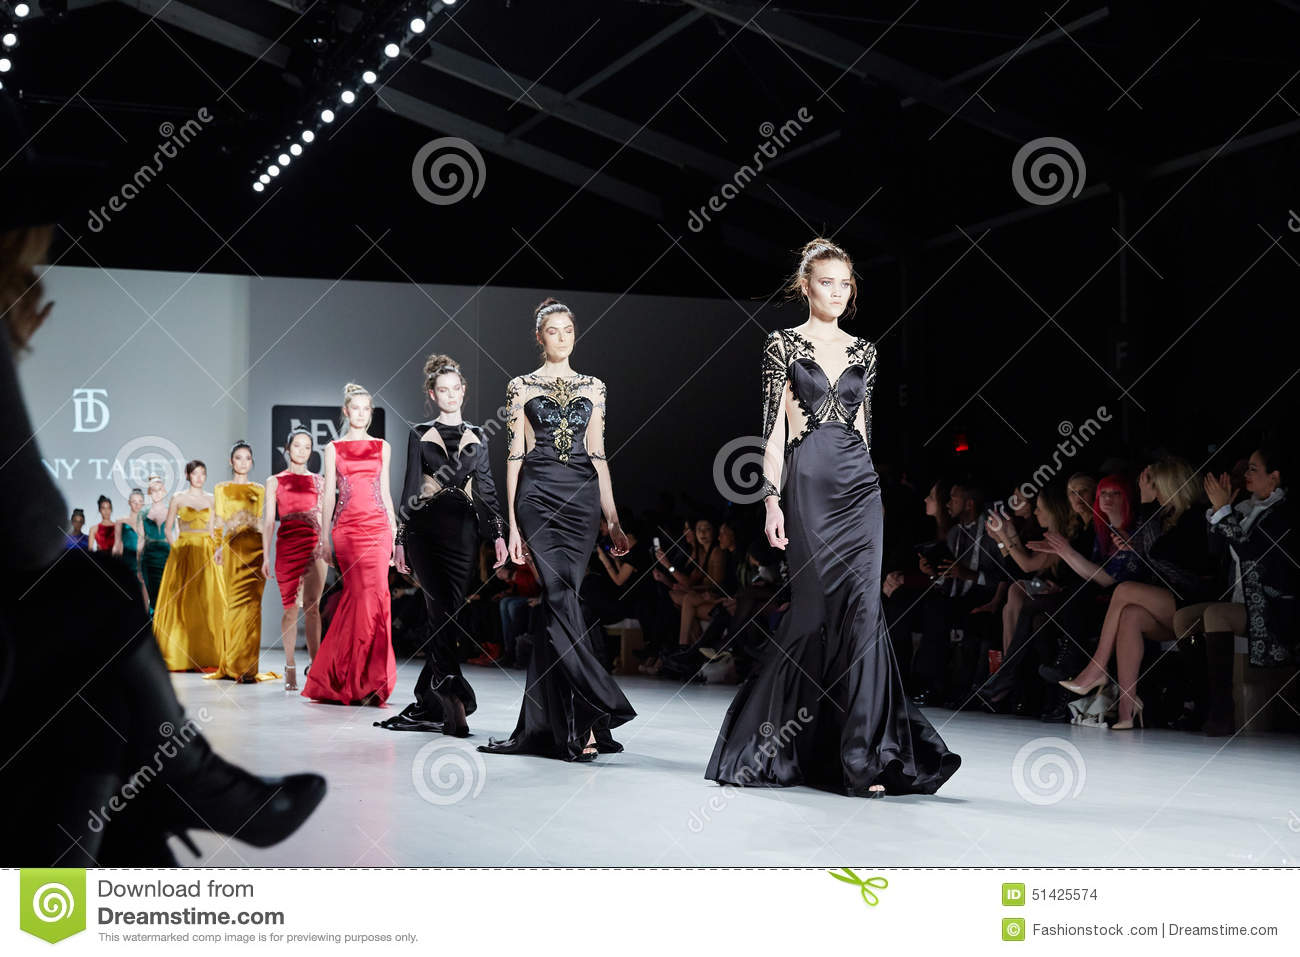 Models walk runway in Dany Tabet dress at the New York Life fashion show during MBFW Fall 2015